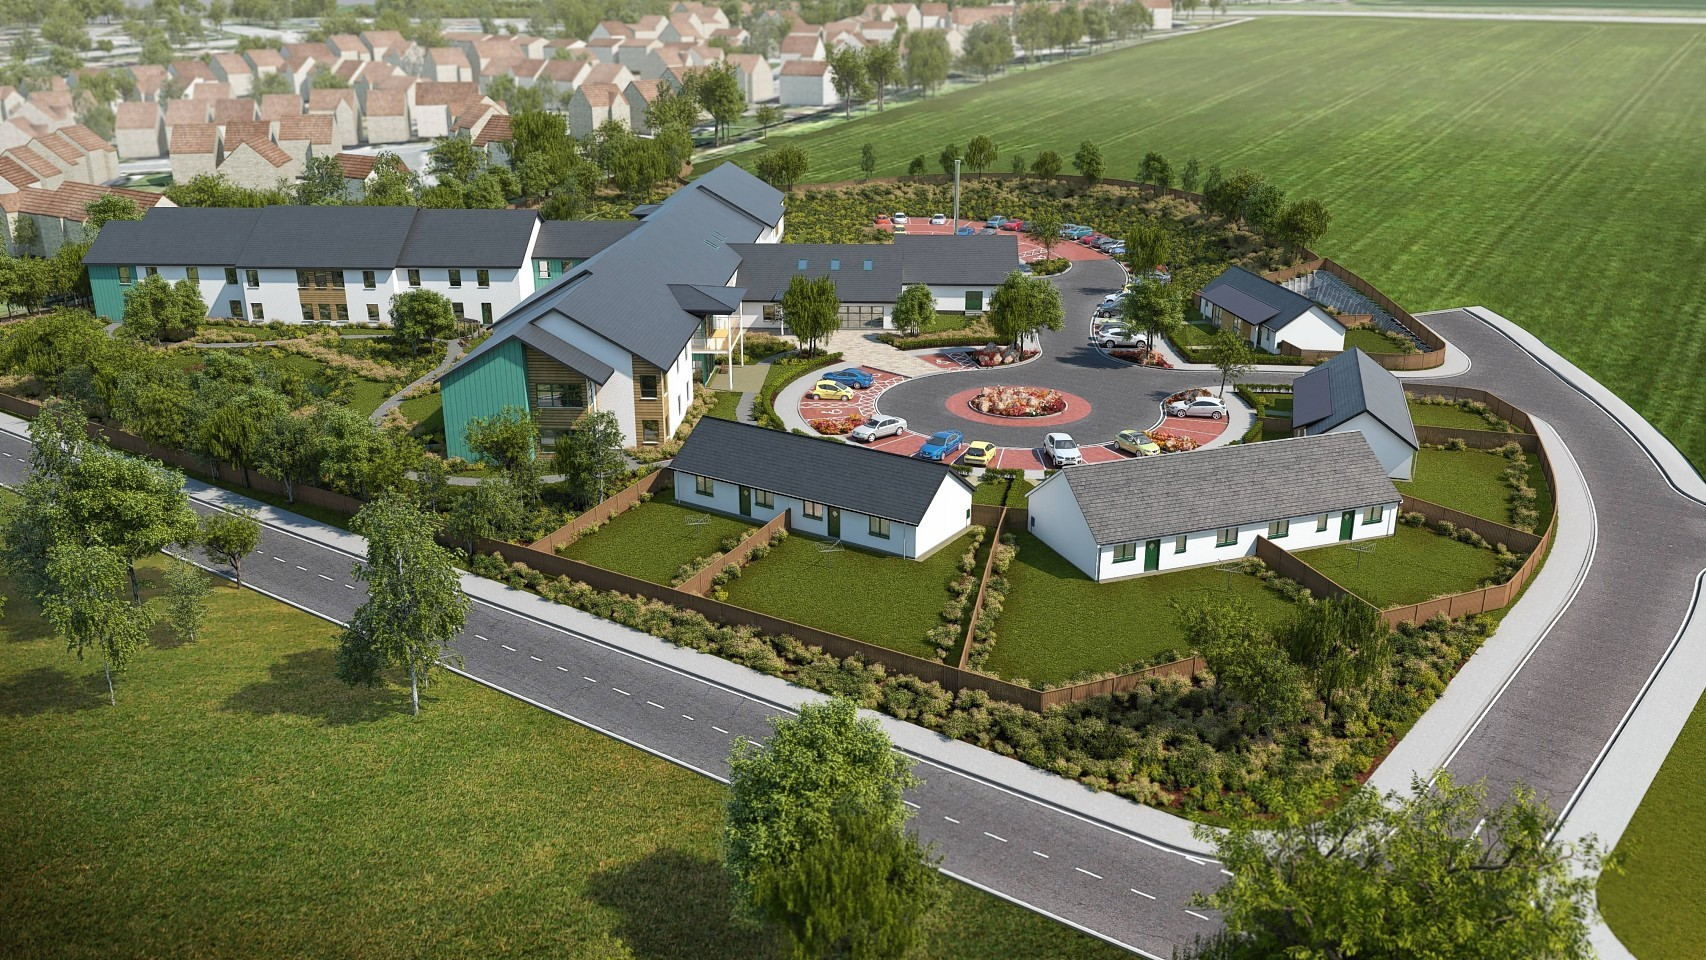 Inverurie care village is similar to the Peterhead proposals